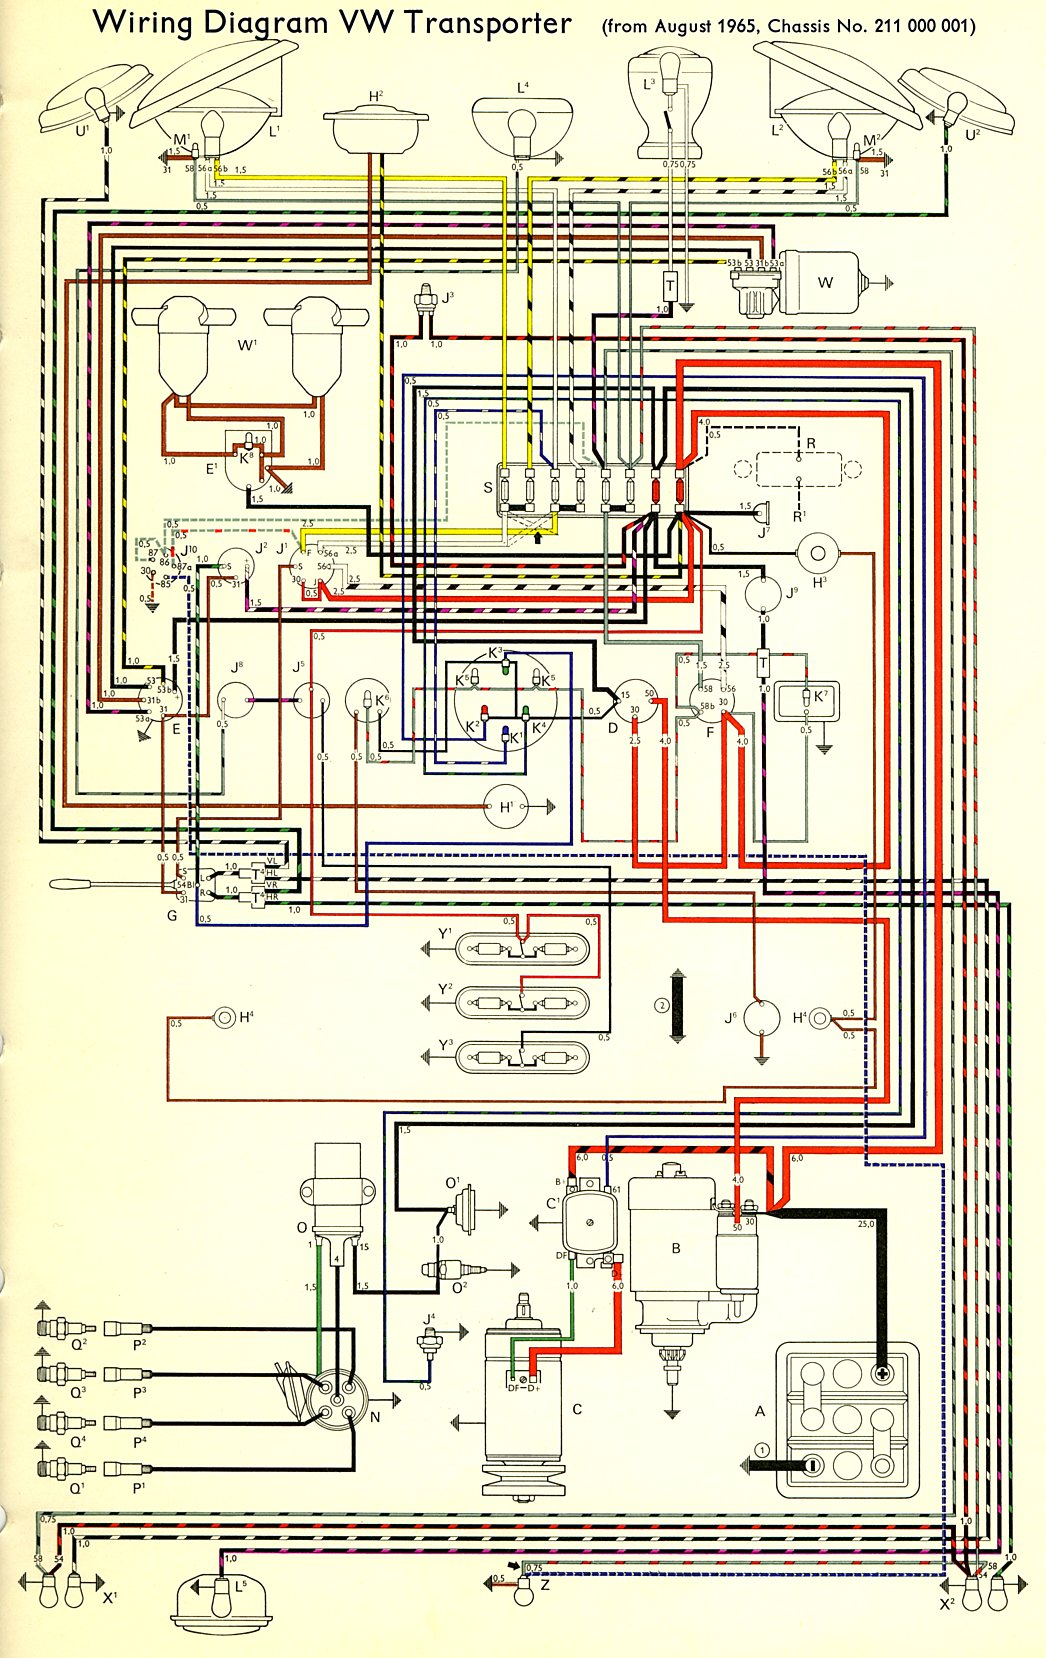 1974 vw bus wiring diagram 1996 grand cherokee stereo volkswagen bug fuse box  for free